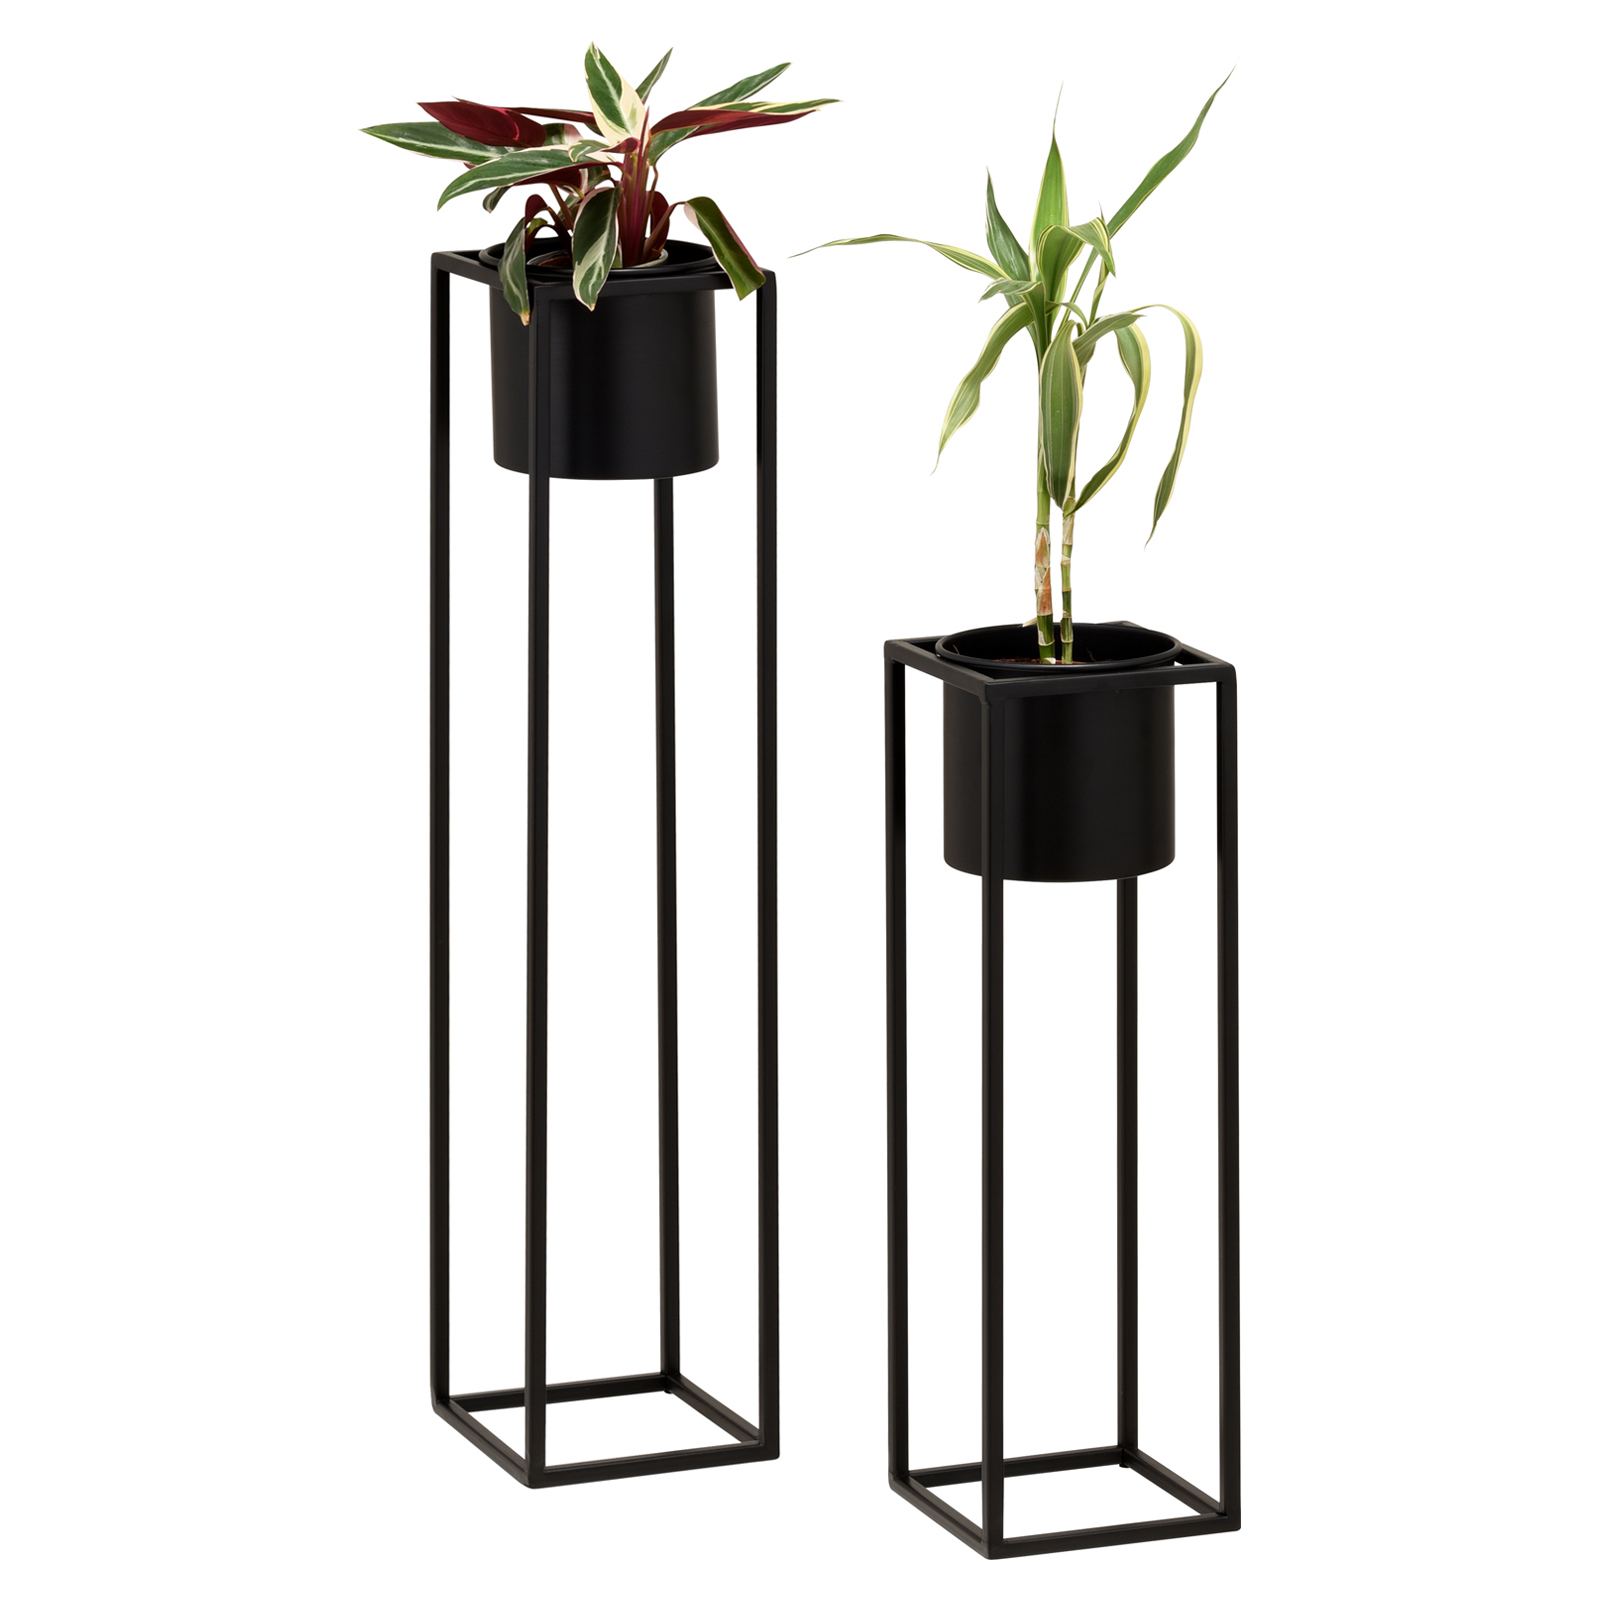 Hartleys-Small-Round-Freestanding-Black-Metal-Plant-Pot-Tall-Square-Floor-Stand thumbnail 21